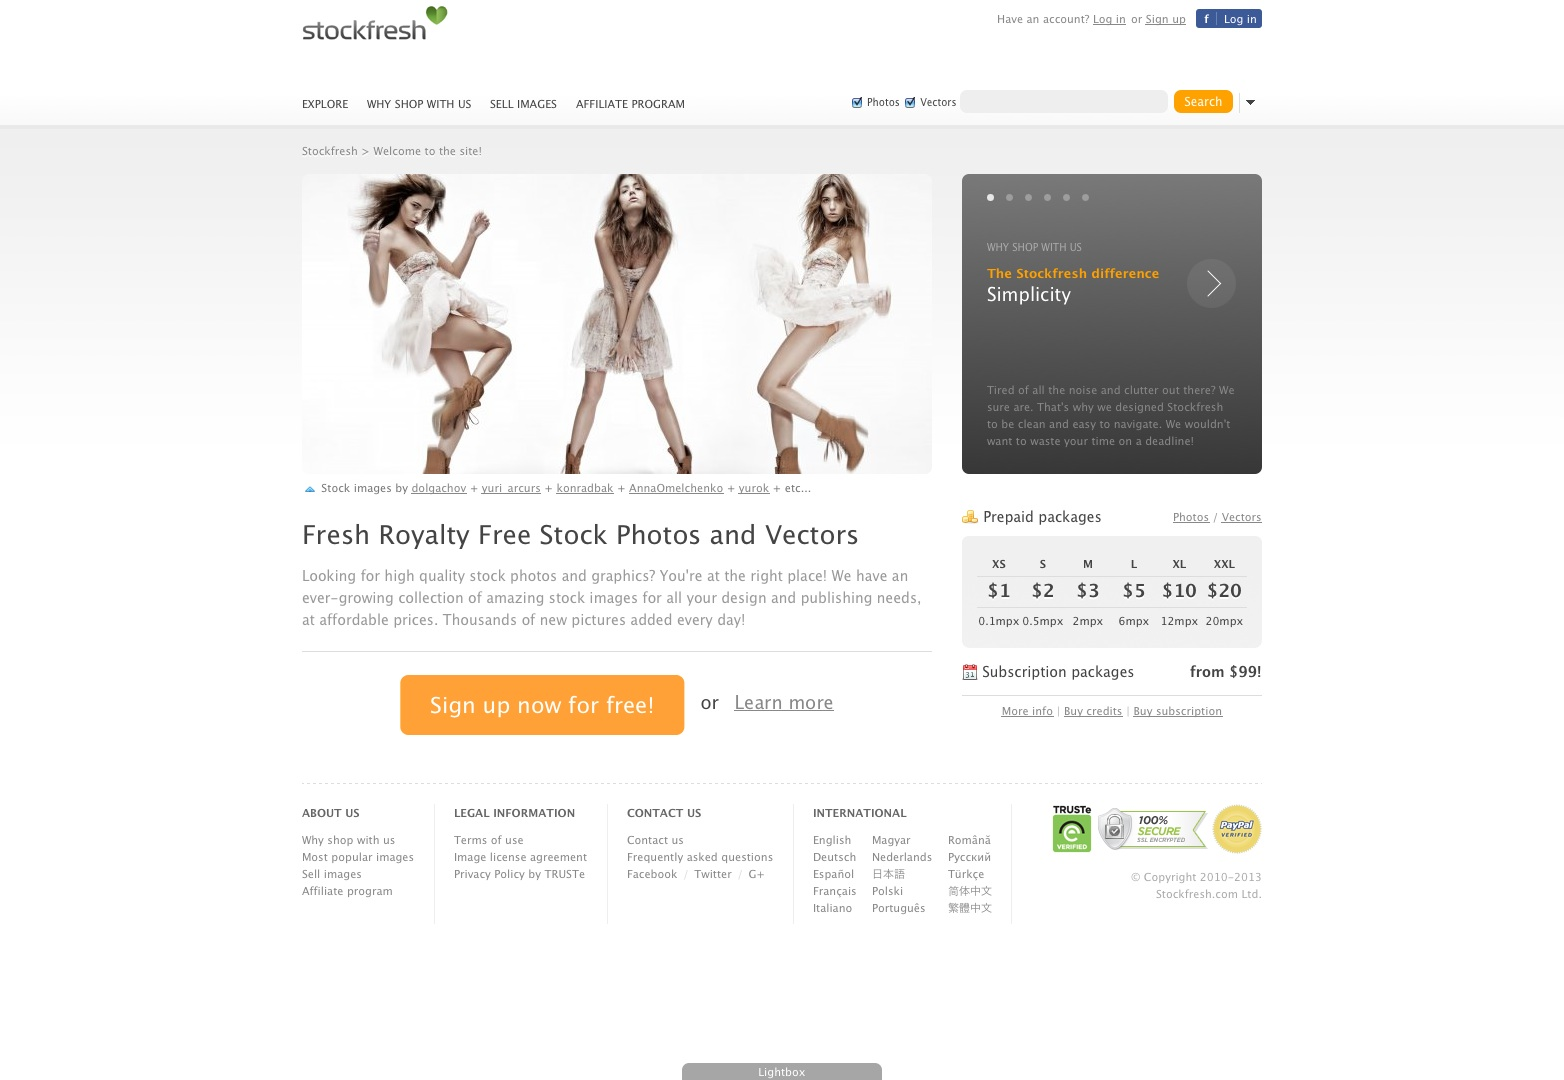 Stock-Photos-by-Stockfresh-Buy-Royalty-Free-Images-and-Vector-Illustrations.jpg